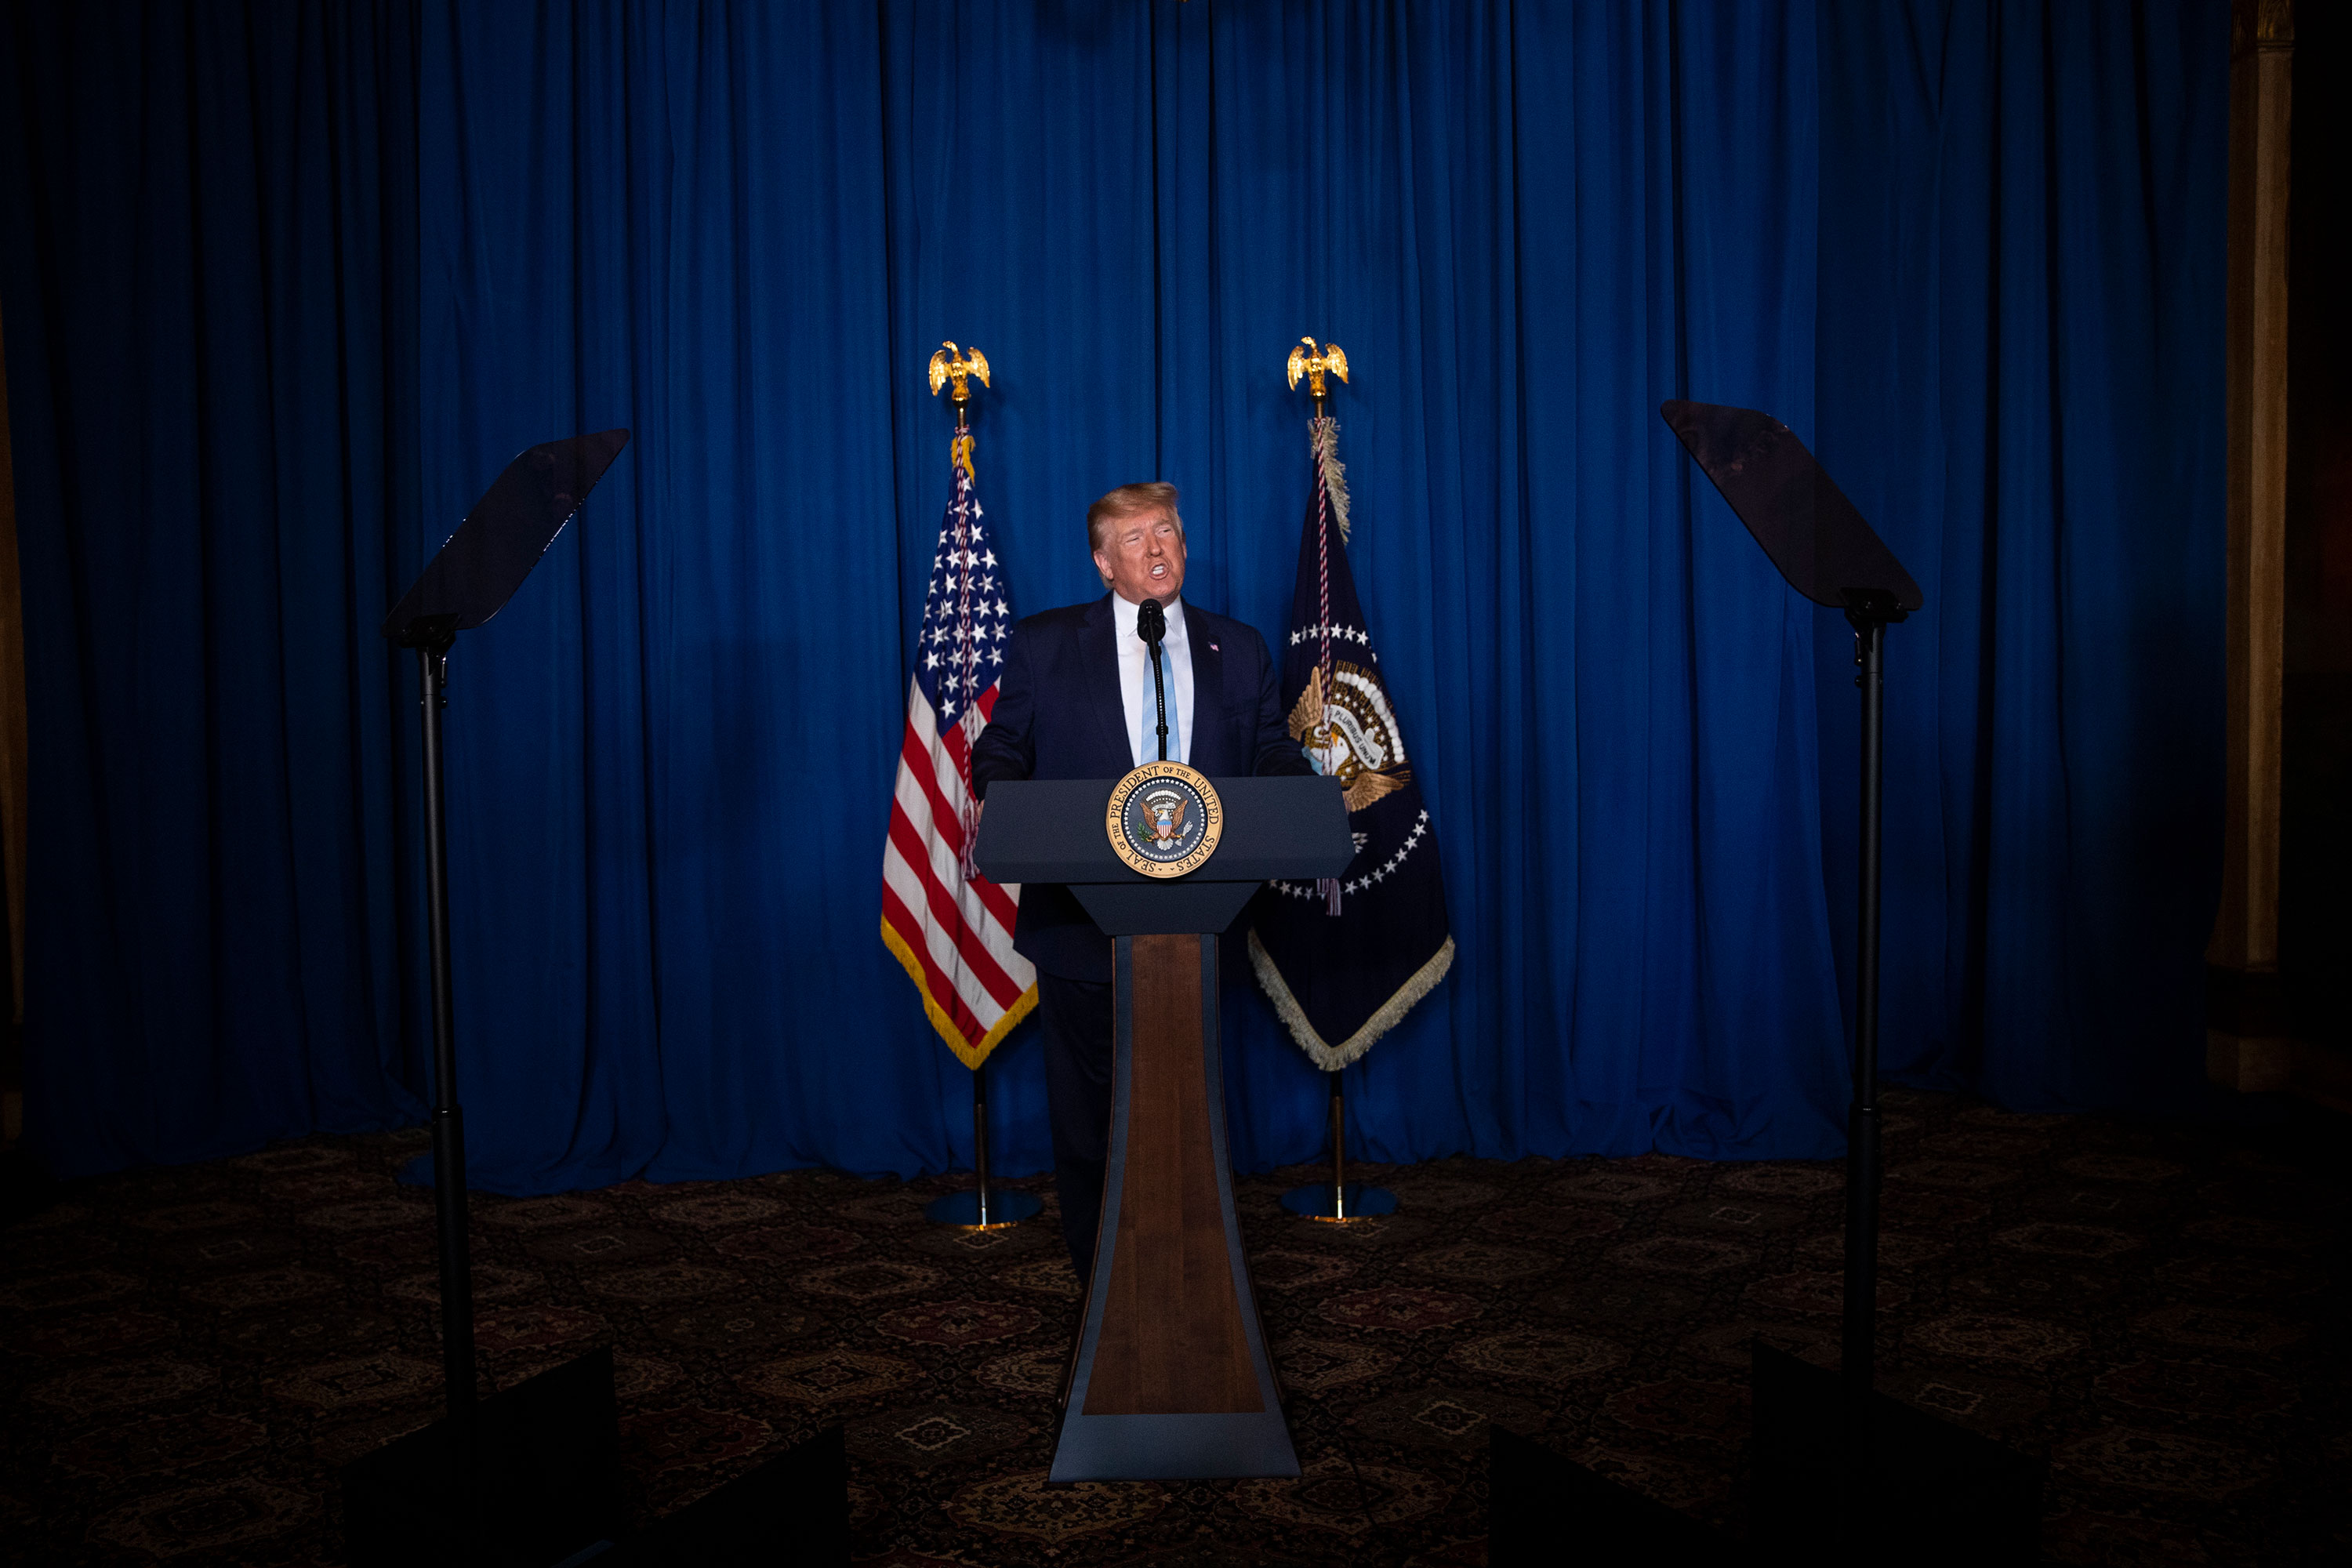 President Donald Trump delivers remarks on Iran following the US airstrike that killed Qasem Soleimani.